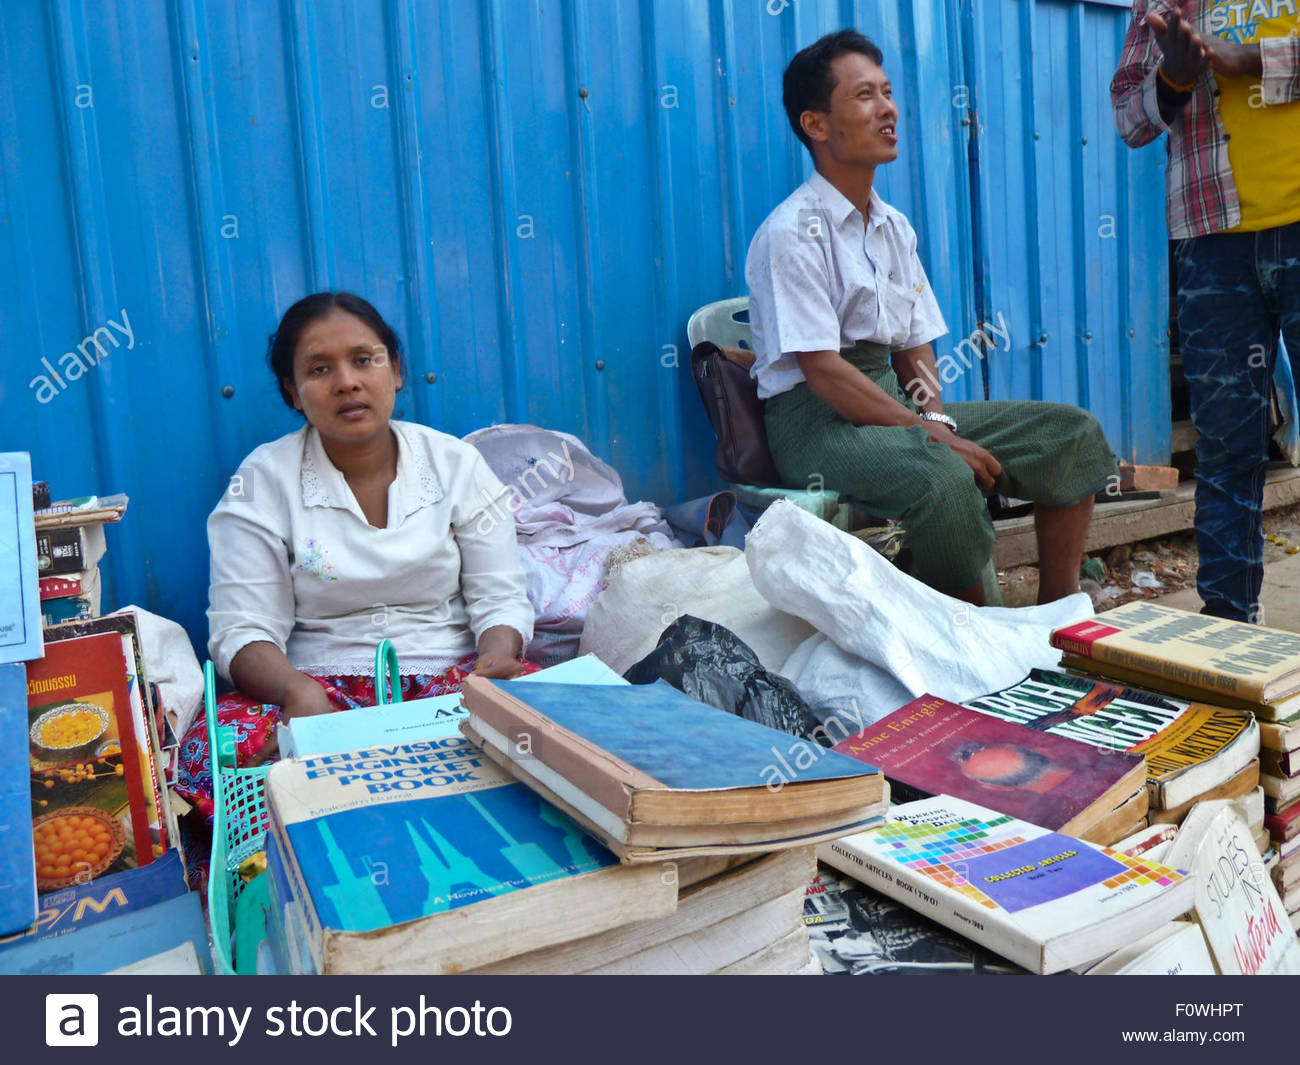 A female and male street bookseller seen sitting behind a table of used and second hand novels, paperbacks and books. - Stock Image